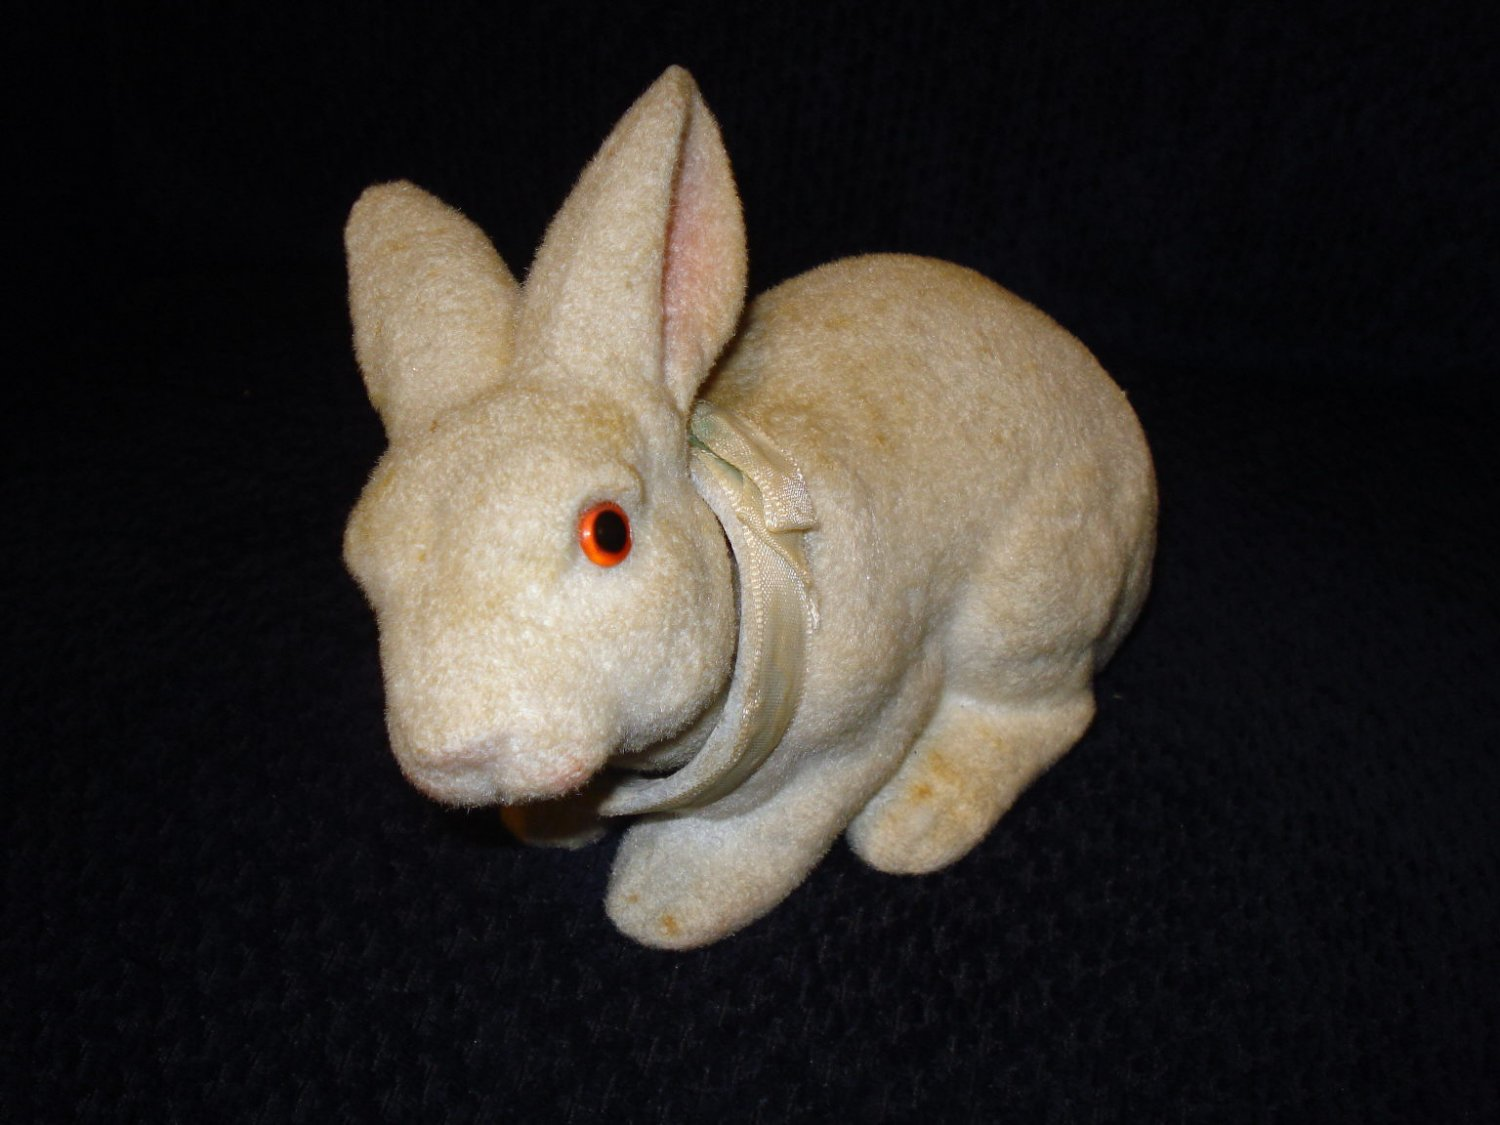 Very Old Nodder Easter Rabbit Figure 8 Inches Long, Glass Eyes, Nappy Exterior